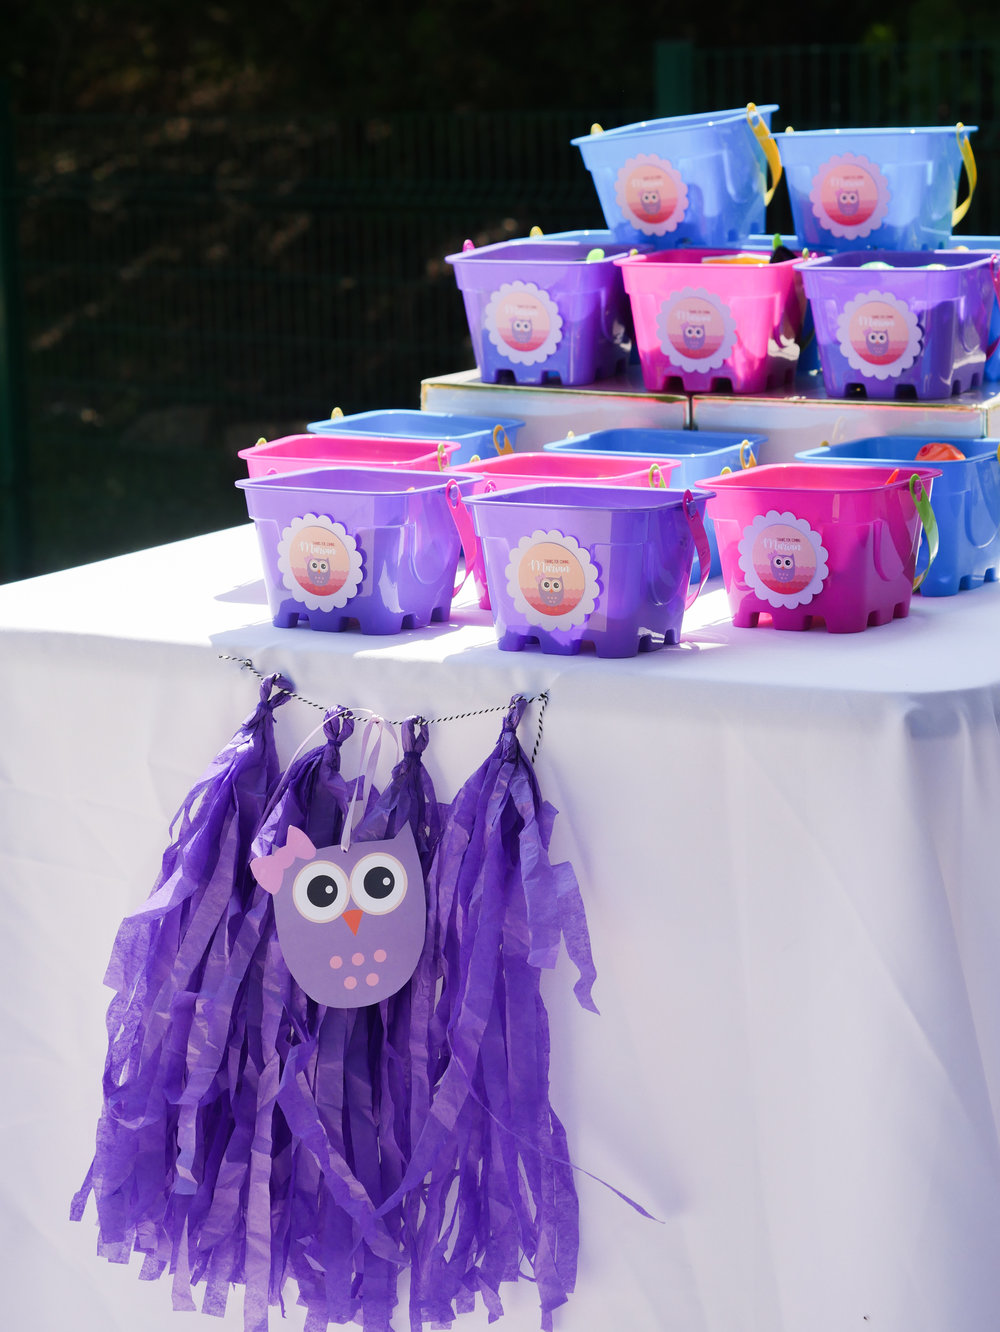 Party Tip: Love the idea of using buckets instead of goodie bags! Reusable and fun! Click to see over 10 creative party ideas in the Owl First Birthday Party by party stylist Mint Event Design in Austin, TX #birthdayparty #partyideas #partyinspiration #owl #firstbirthday #partytreats #partygoods #partyfavors